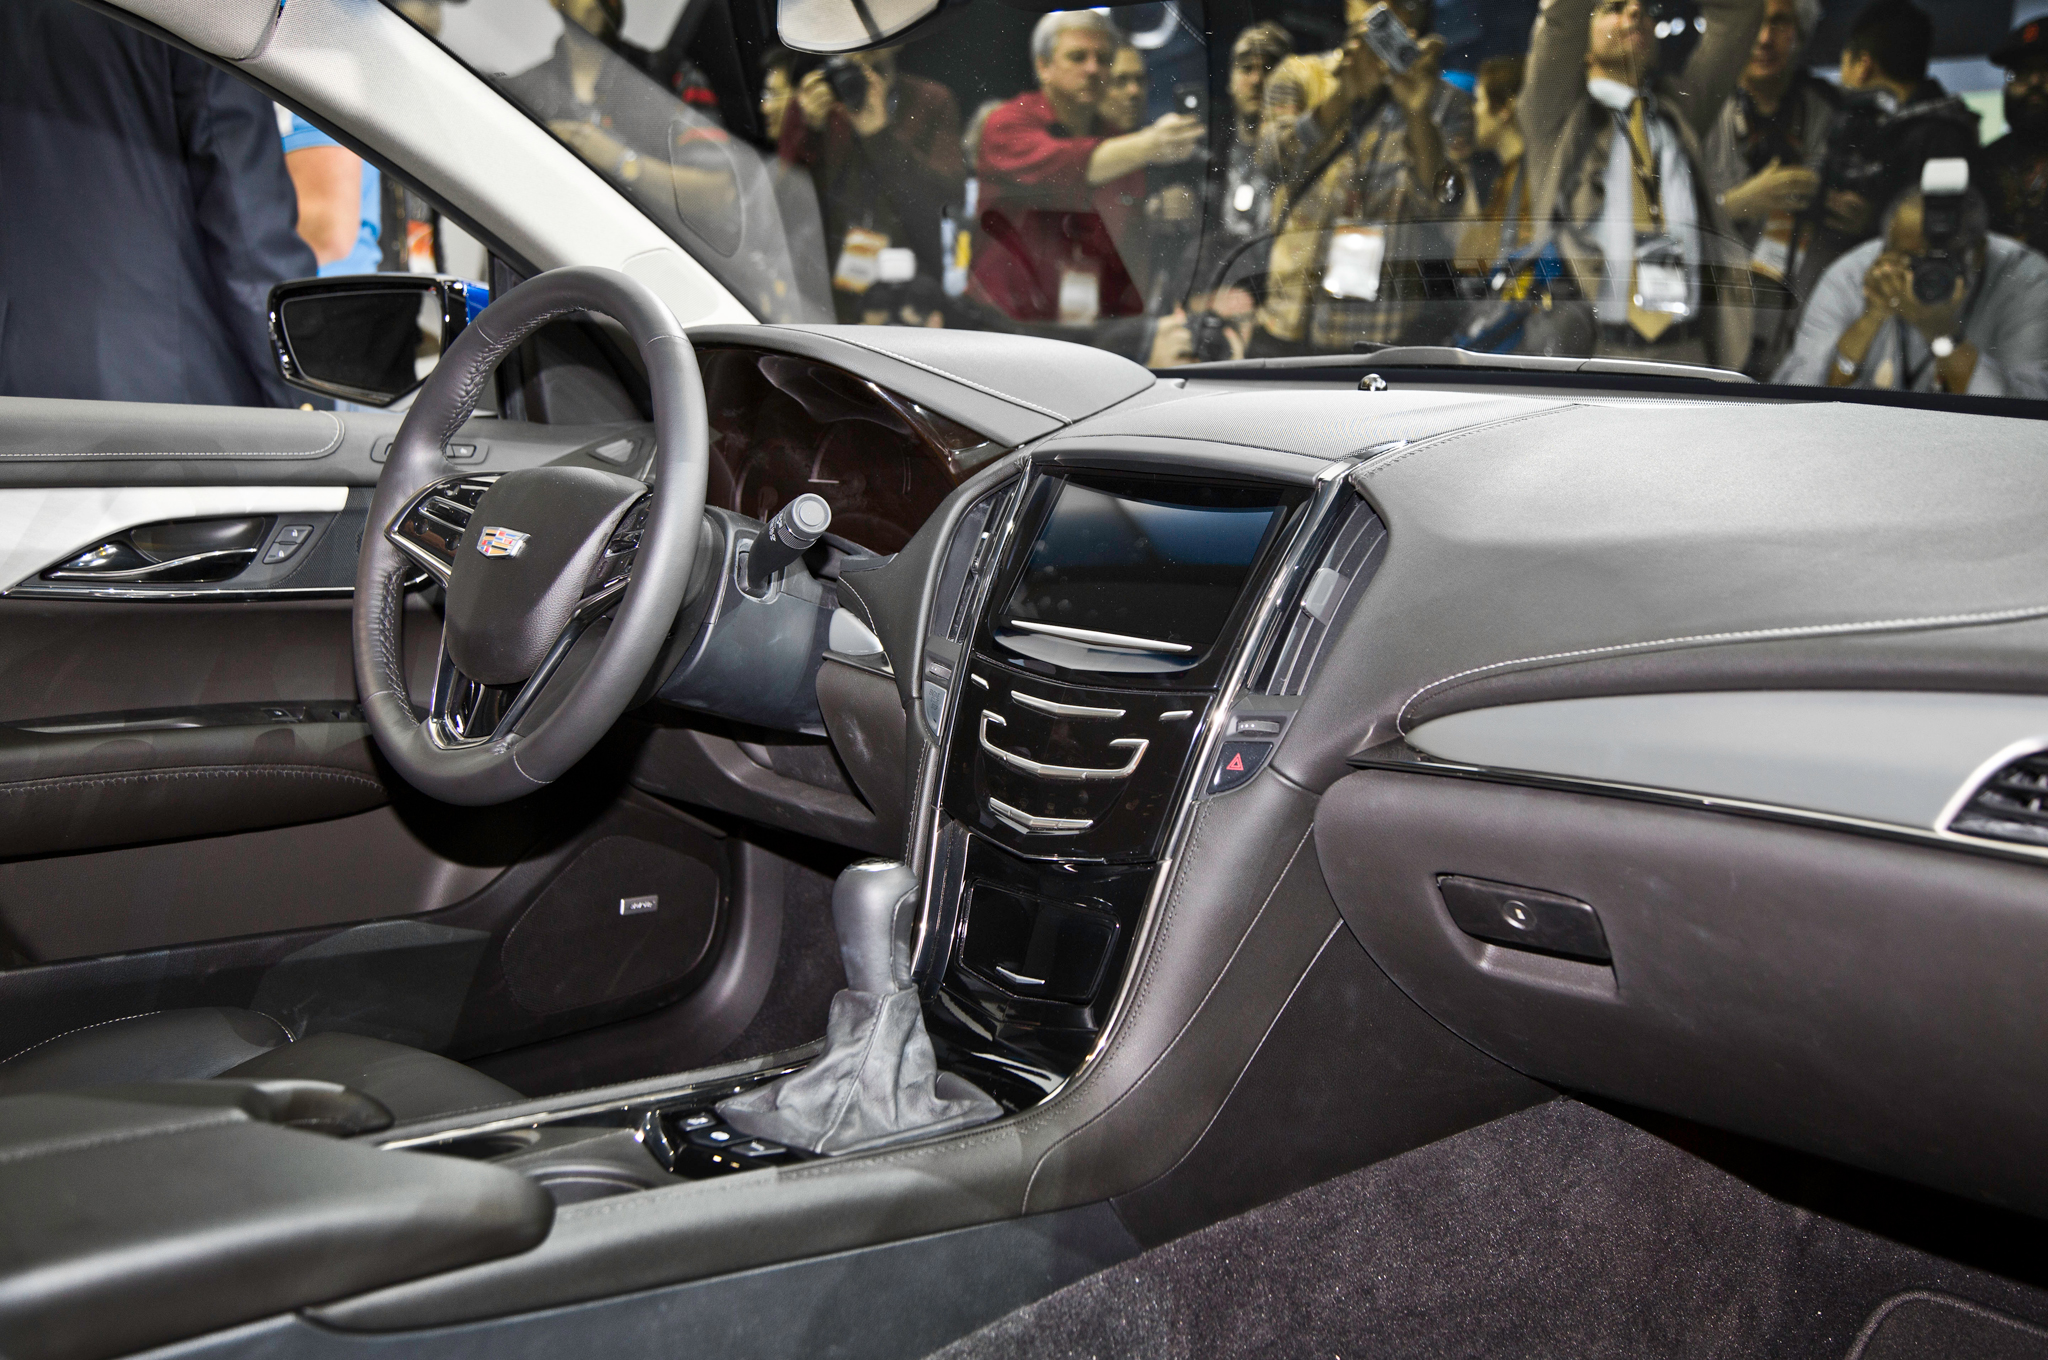 2015 Cadillac Ats Coupe Interior Dash (View 16 of 21)